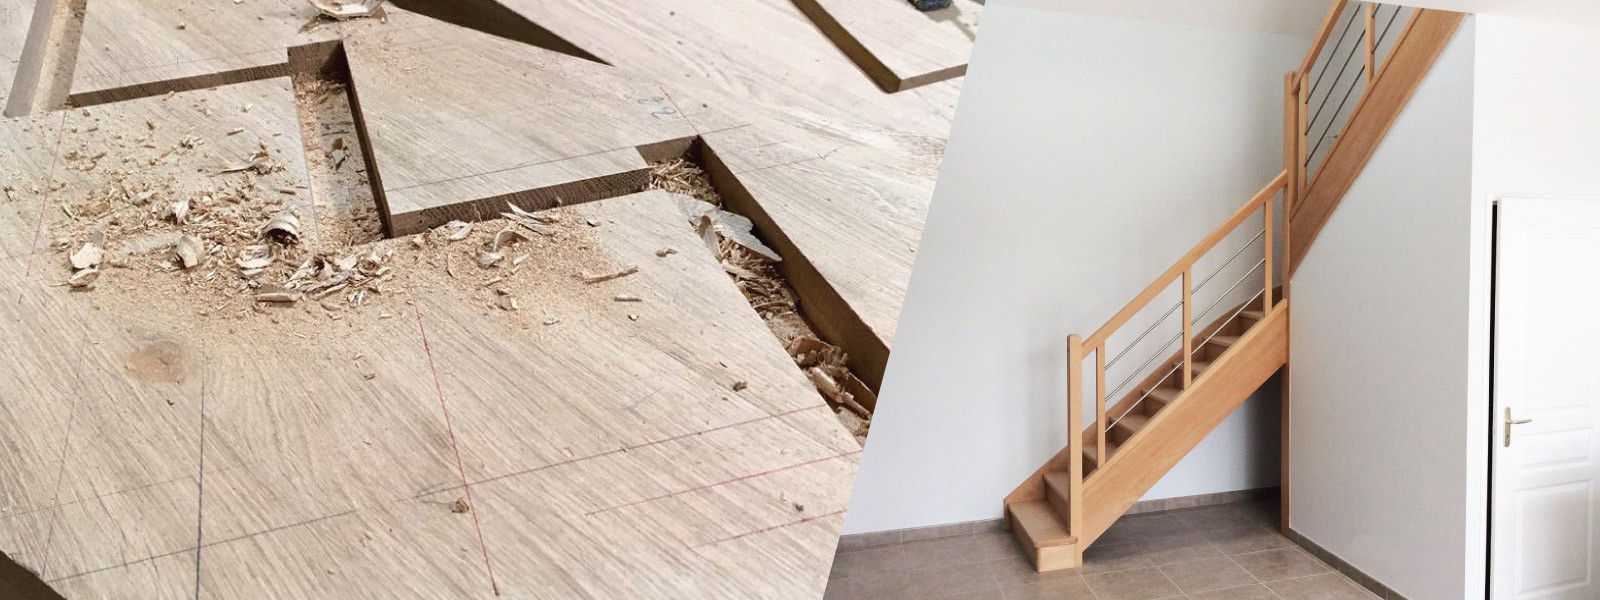 Manufacturer of wooden stairs and mixed materials